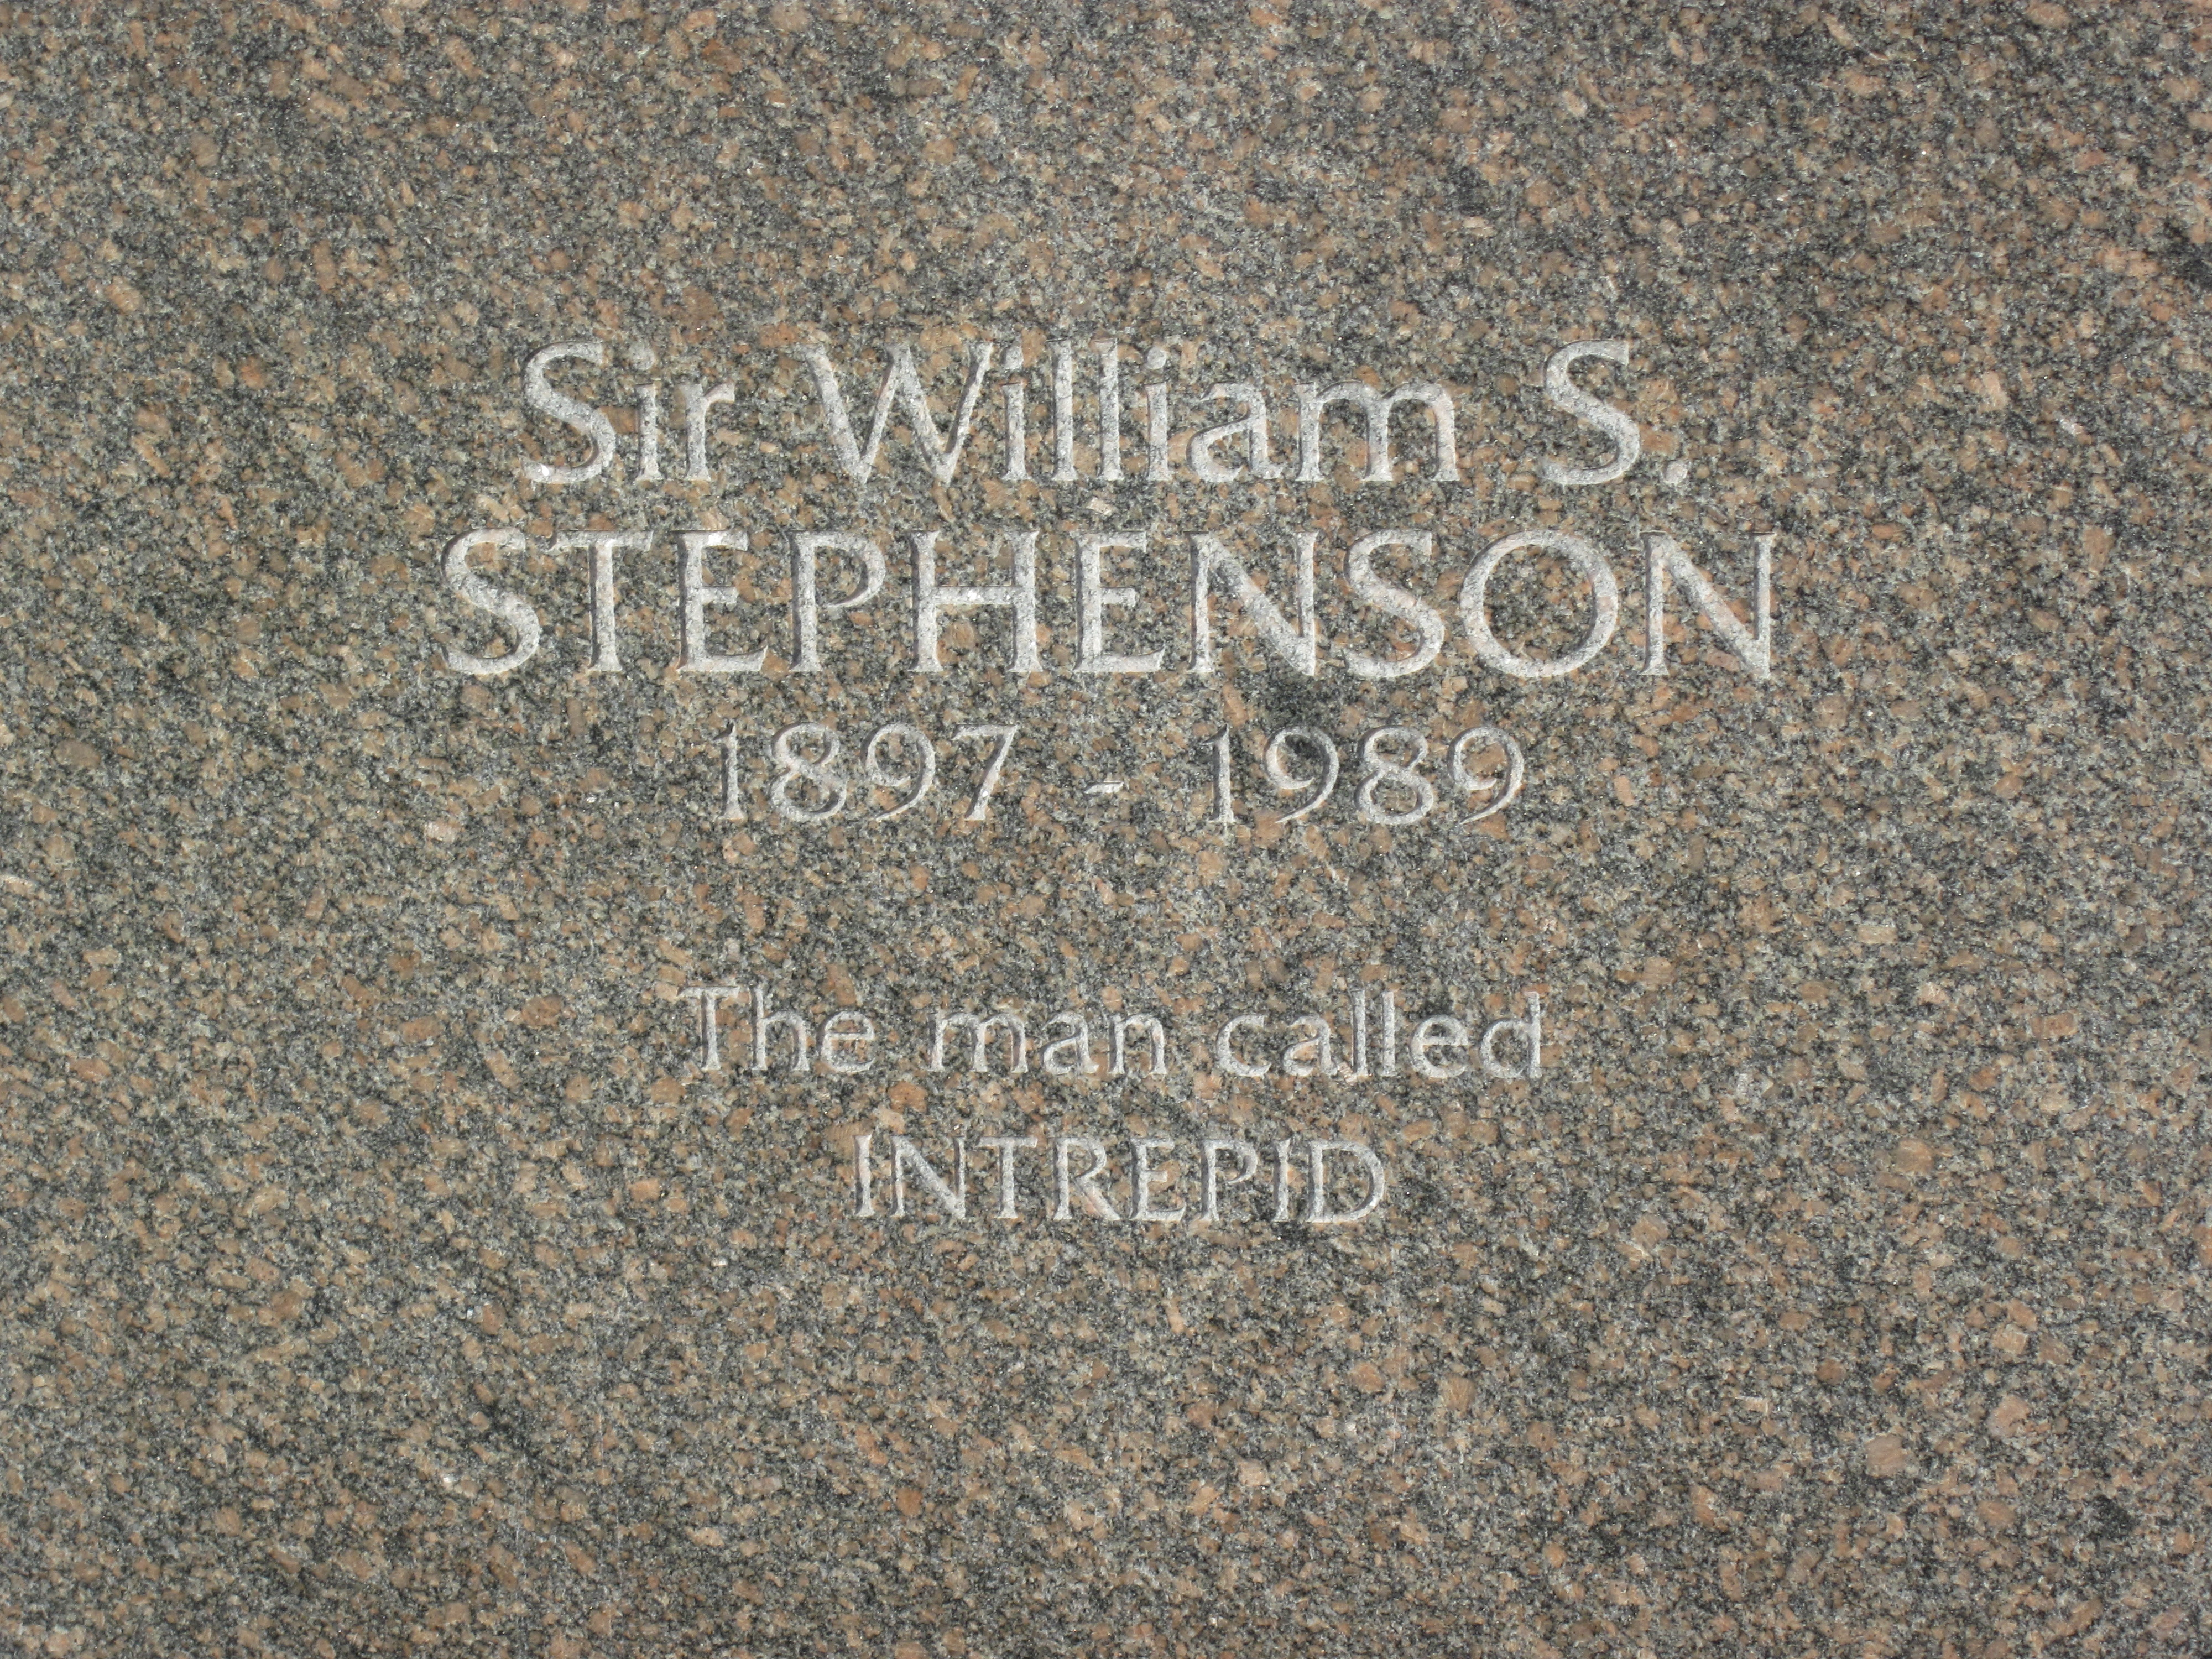 sir william stephenson an inspiration for The name is stephenson, william stephenson  often considered to be the inspiration for the  although roosevelt didn't establish exactly what sir william had.